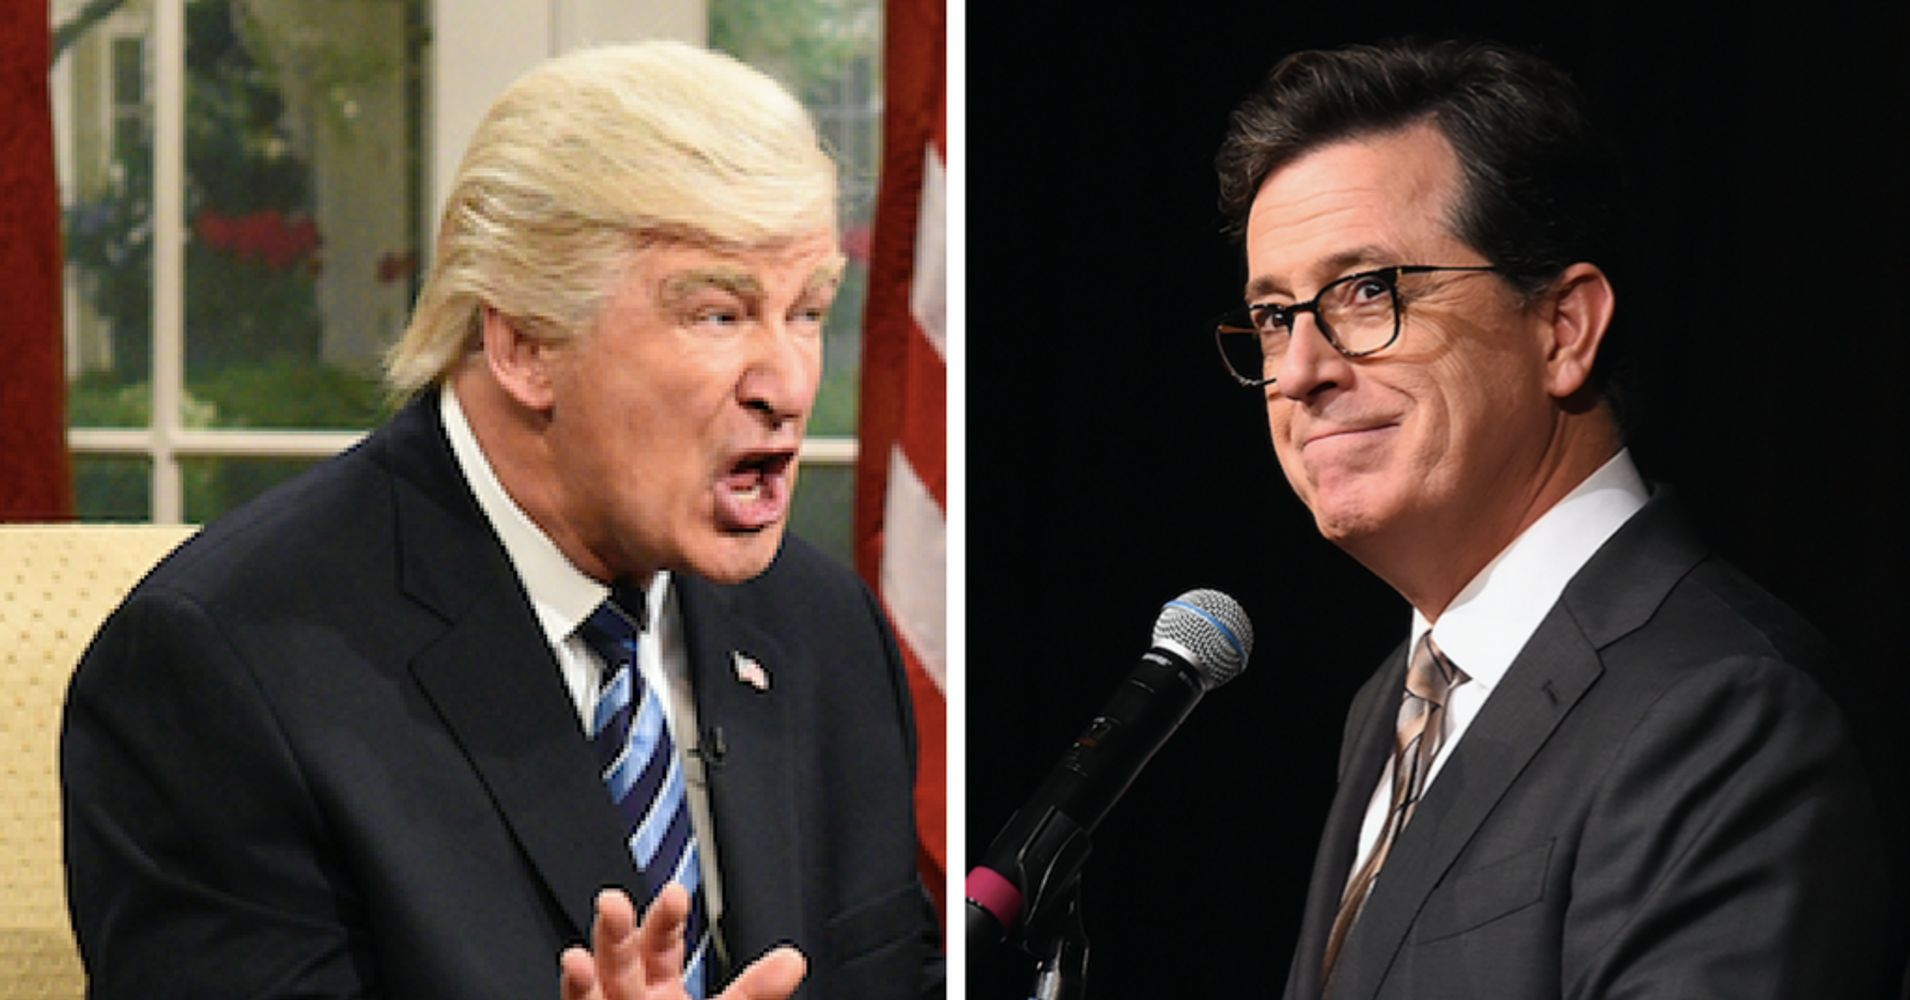 'SNL' And Stephen Colbert May Be Further Dividing Americans